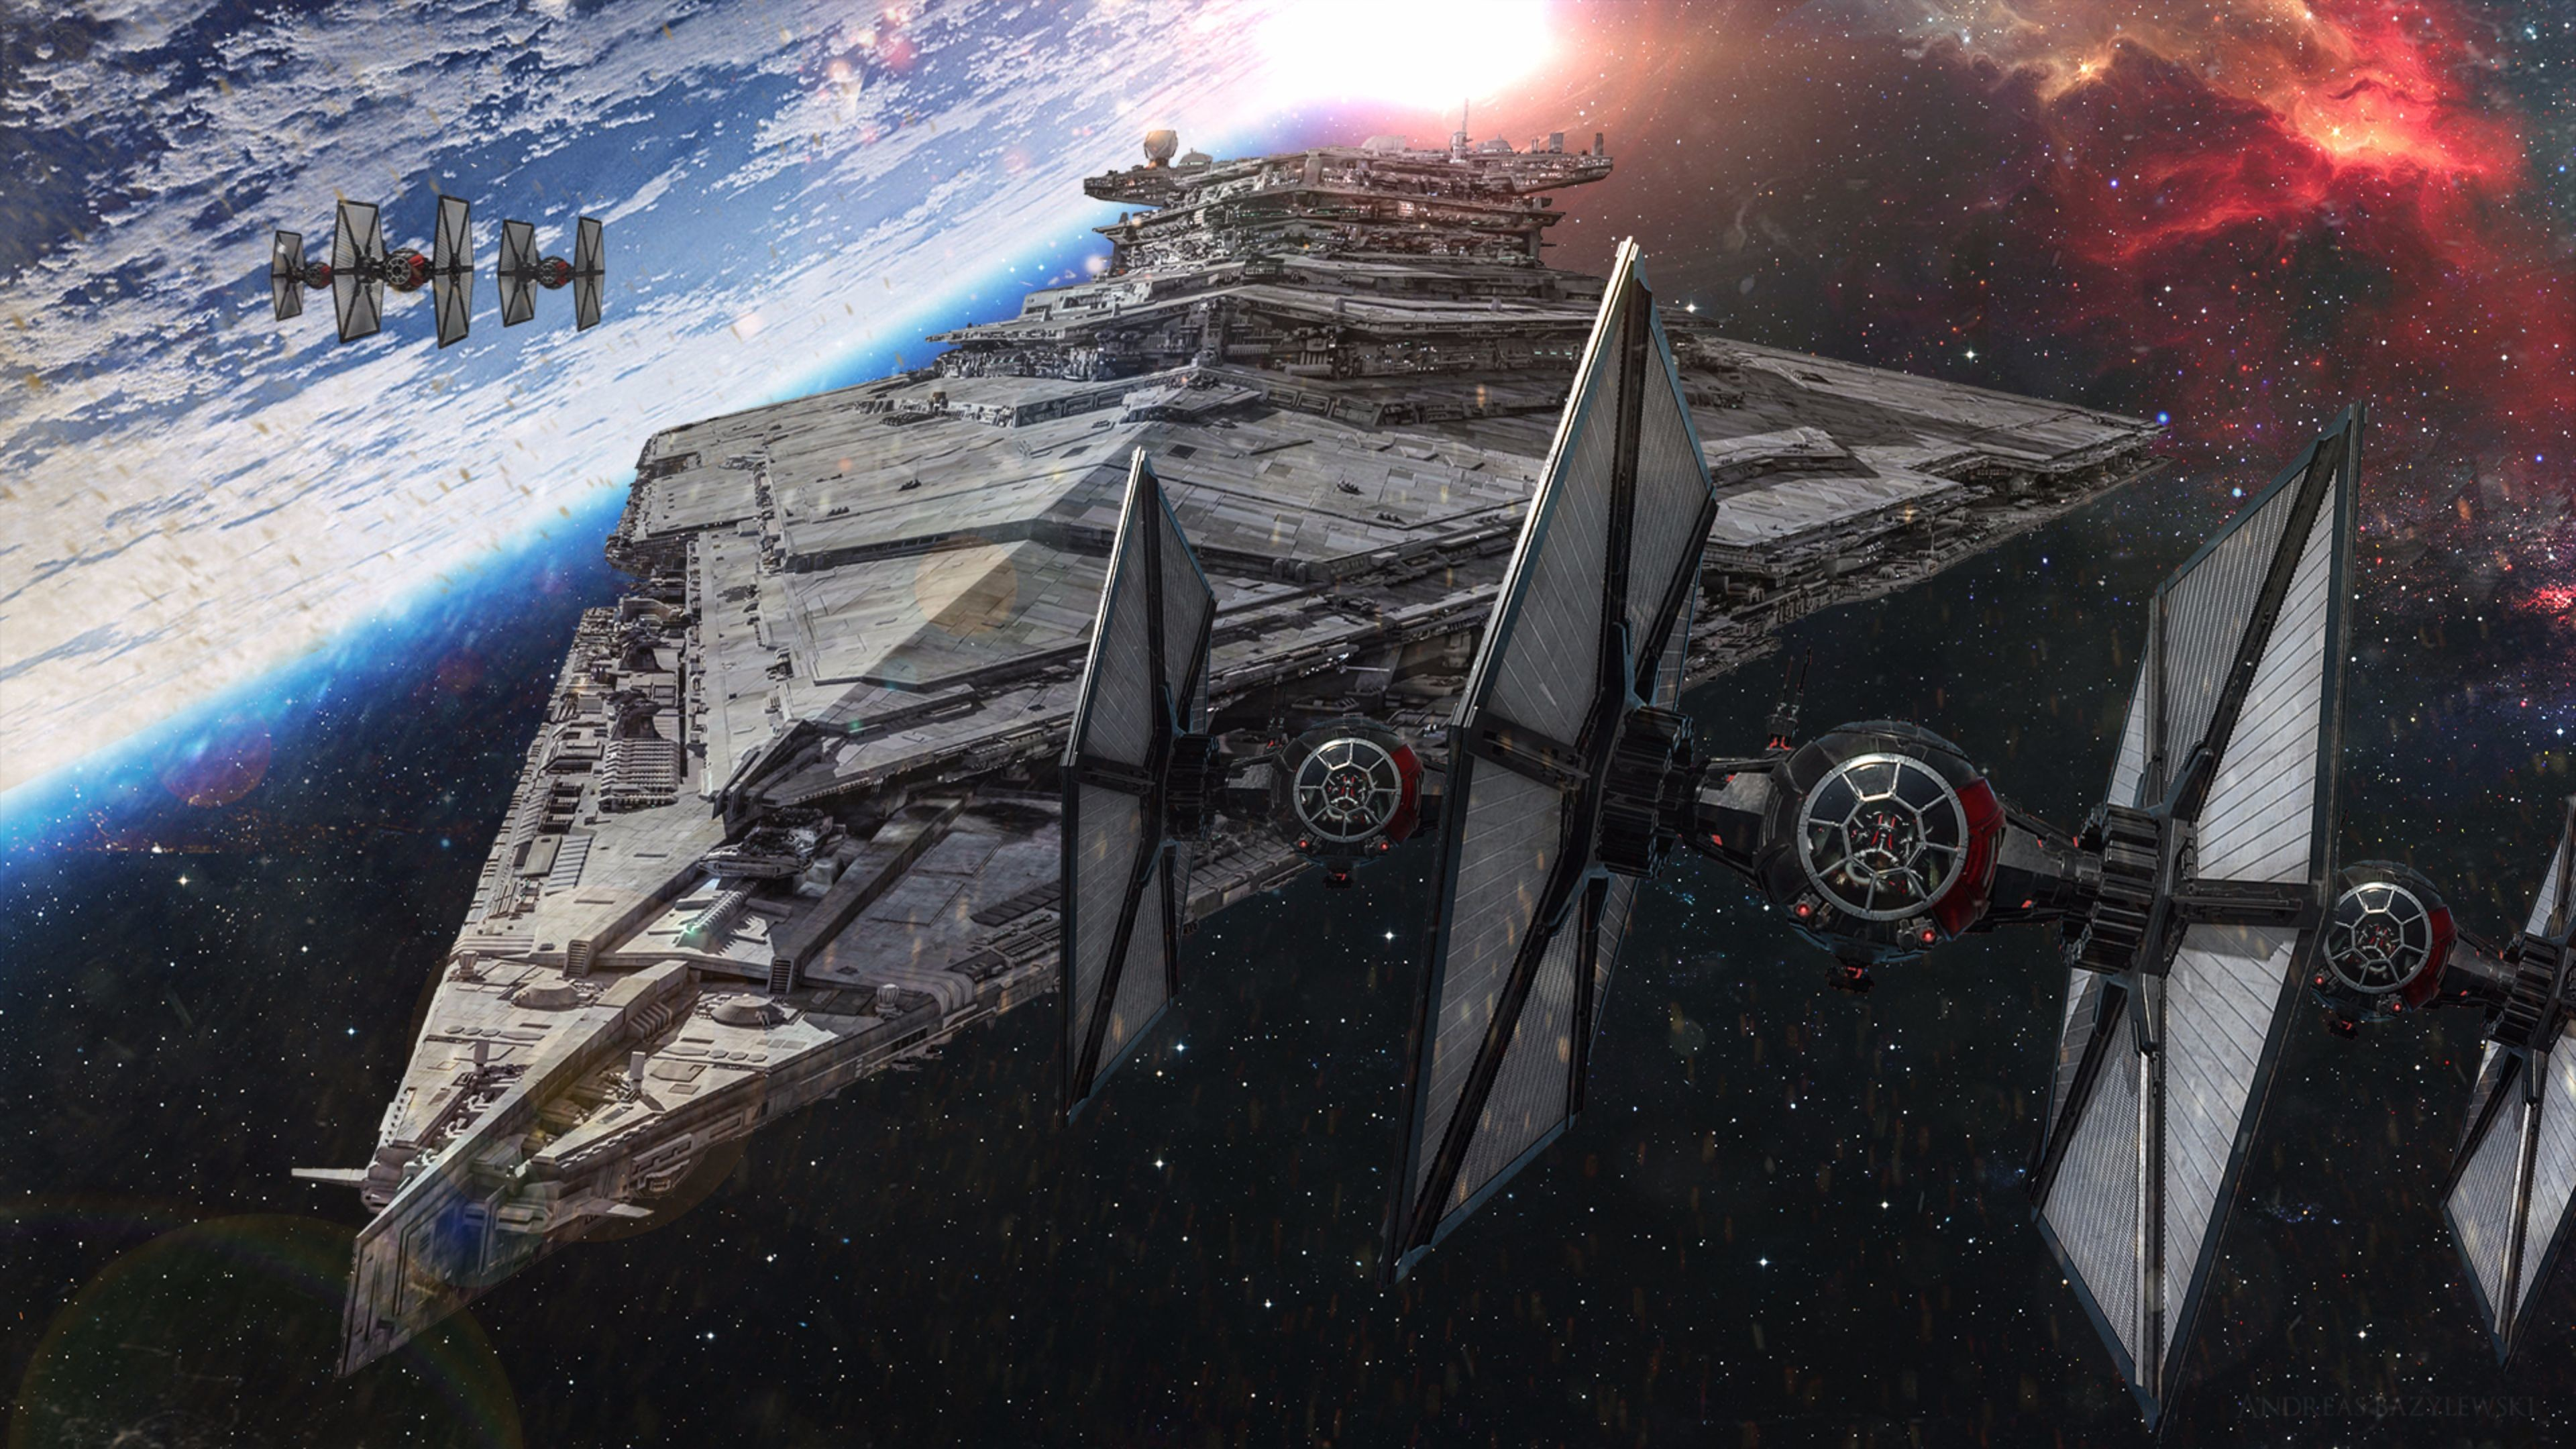 Star Wars Wallpaper 1080p 79 Pictures